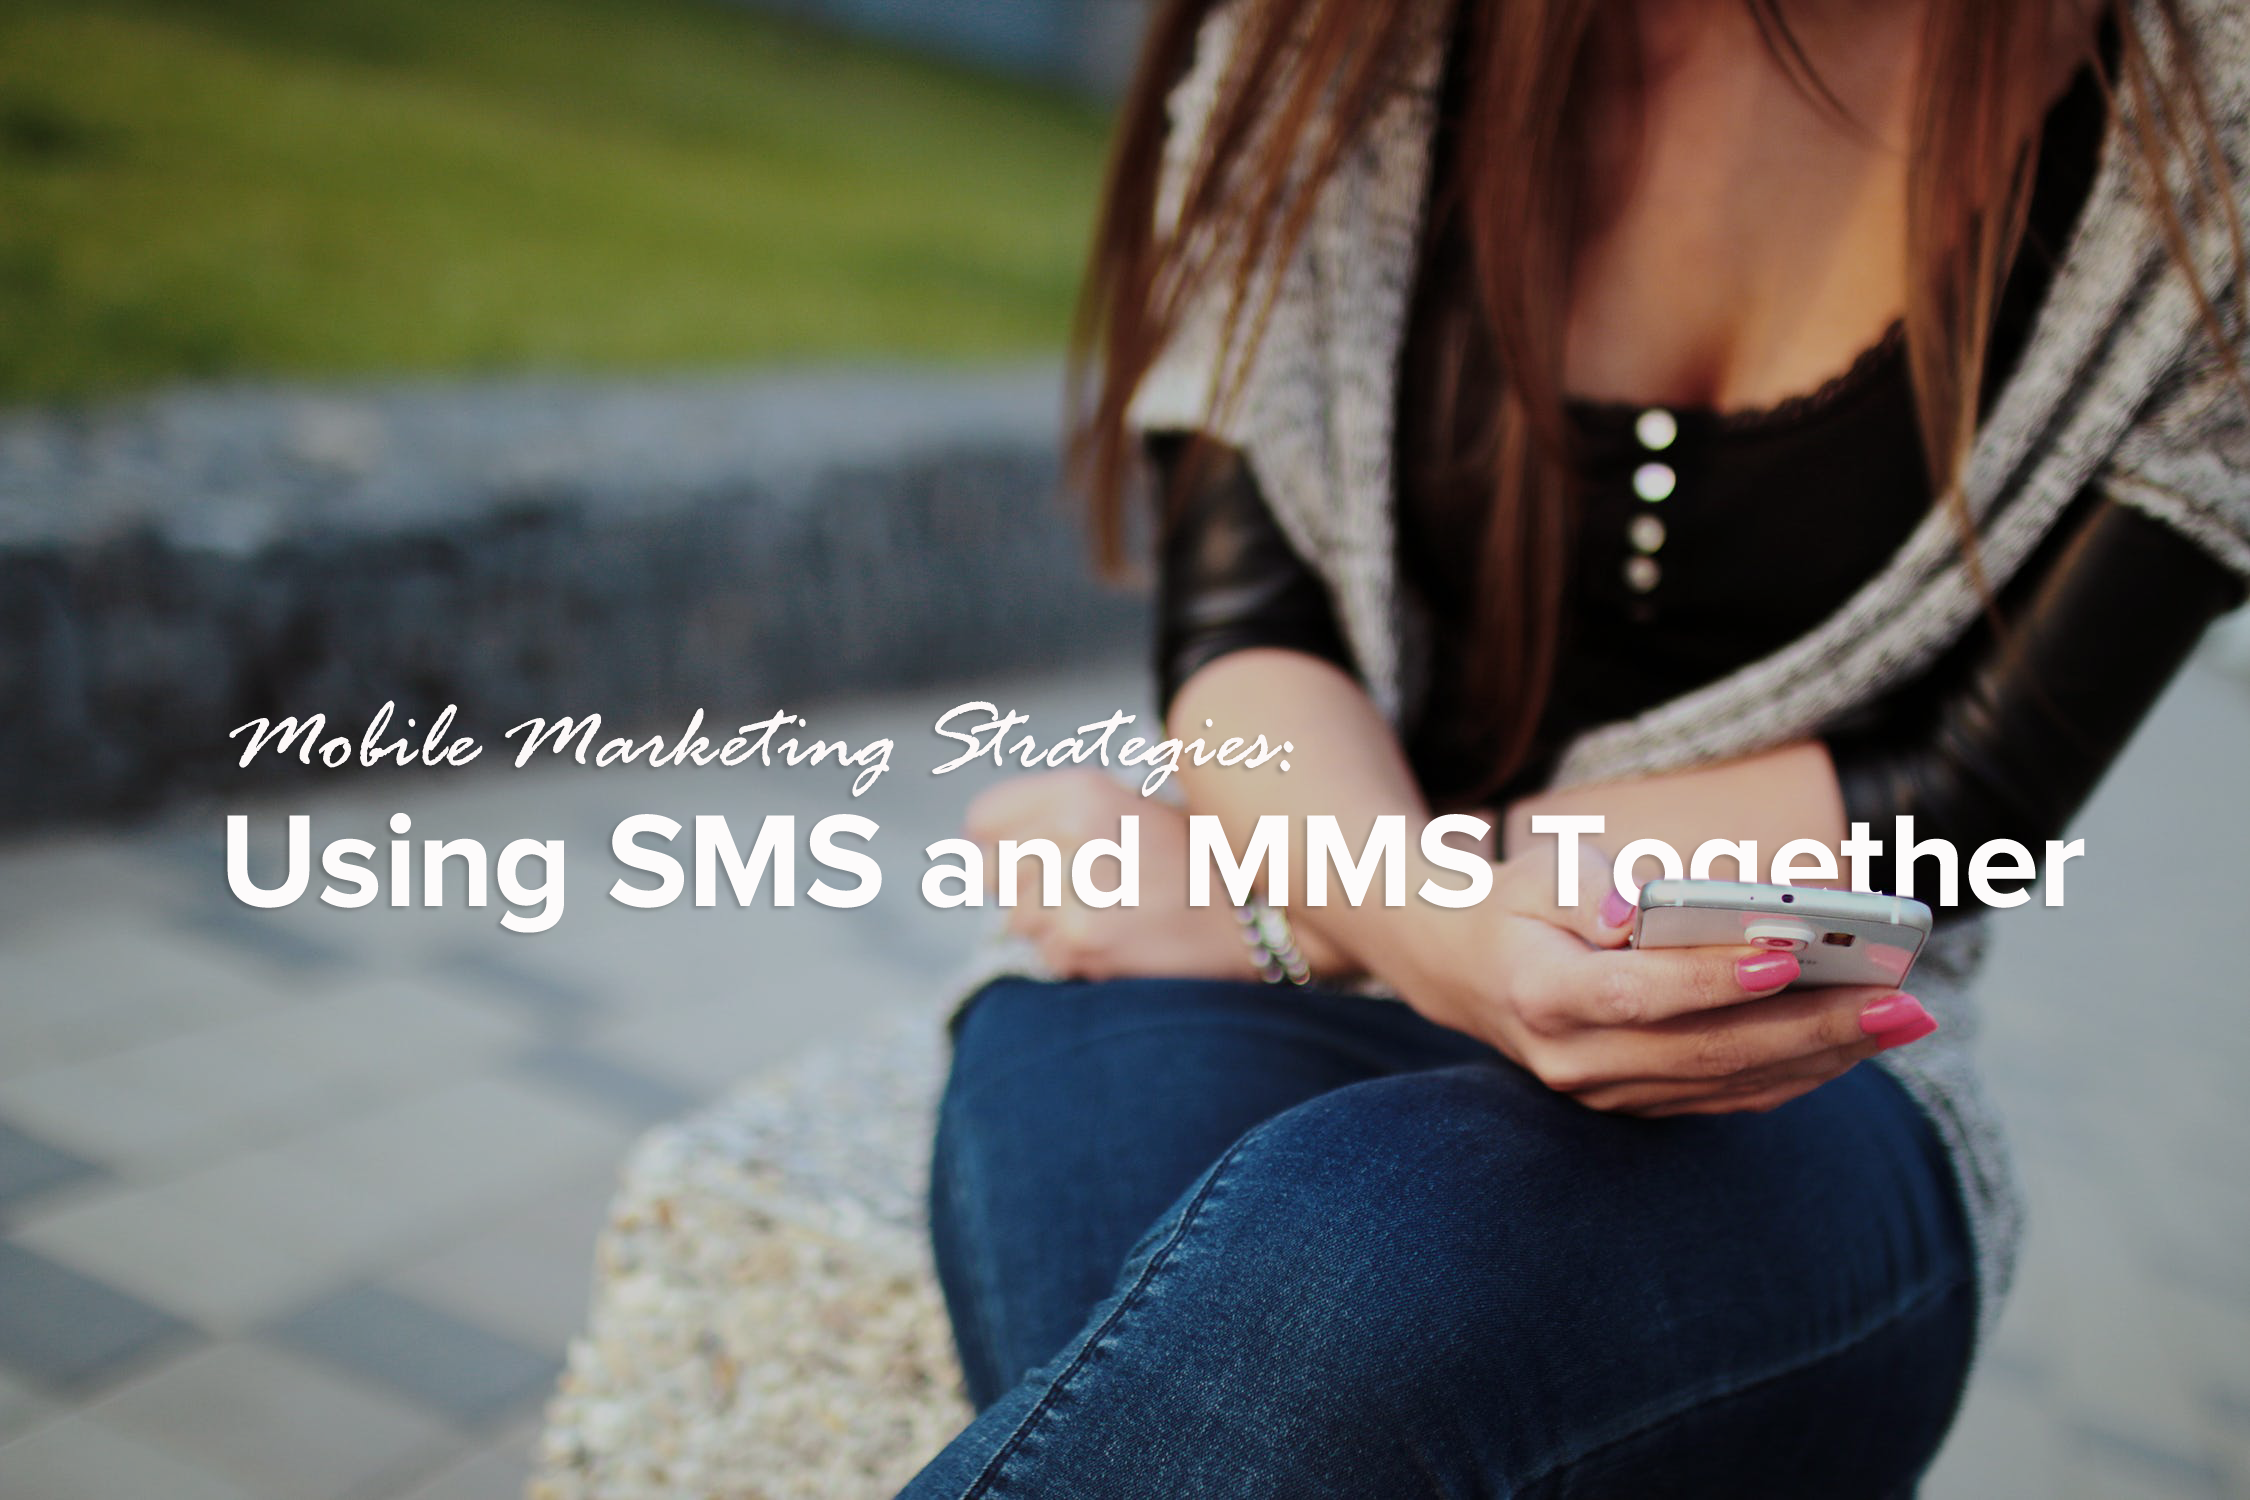 Using SMS and MMS Together